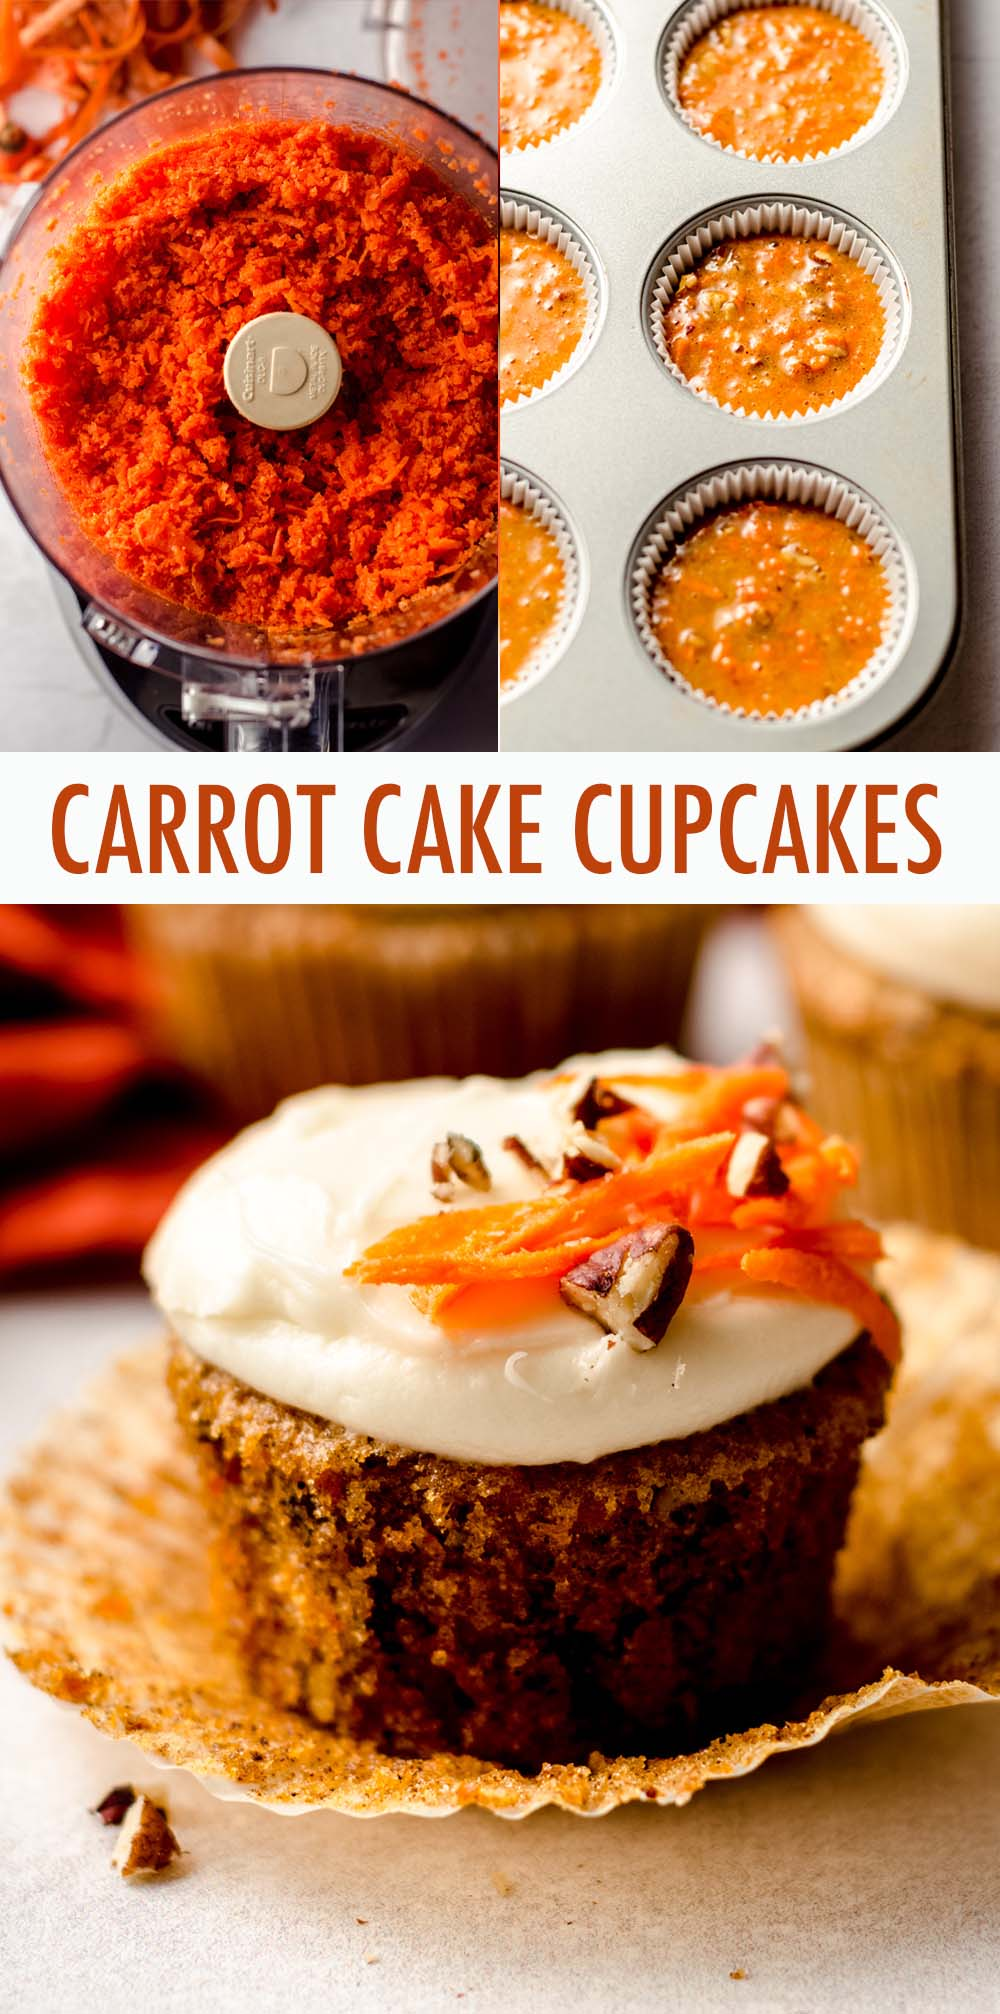 Wonderfully moist and flavorful carrot cake cupcakes filled with crunchy chopped nuts and topped with a smooth and creamy cream cheese frosting.